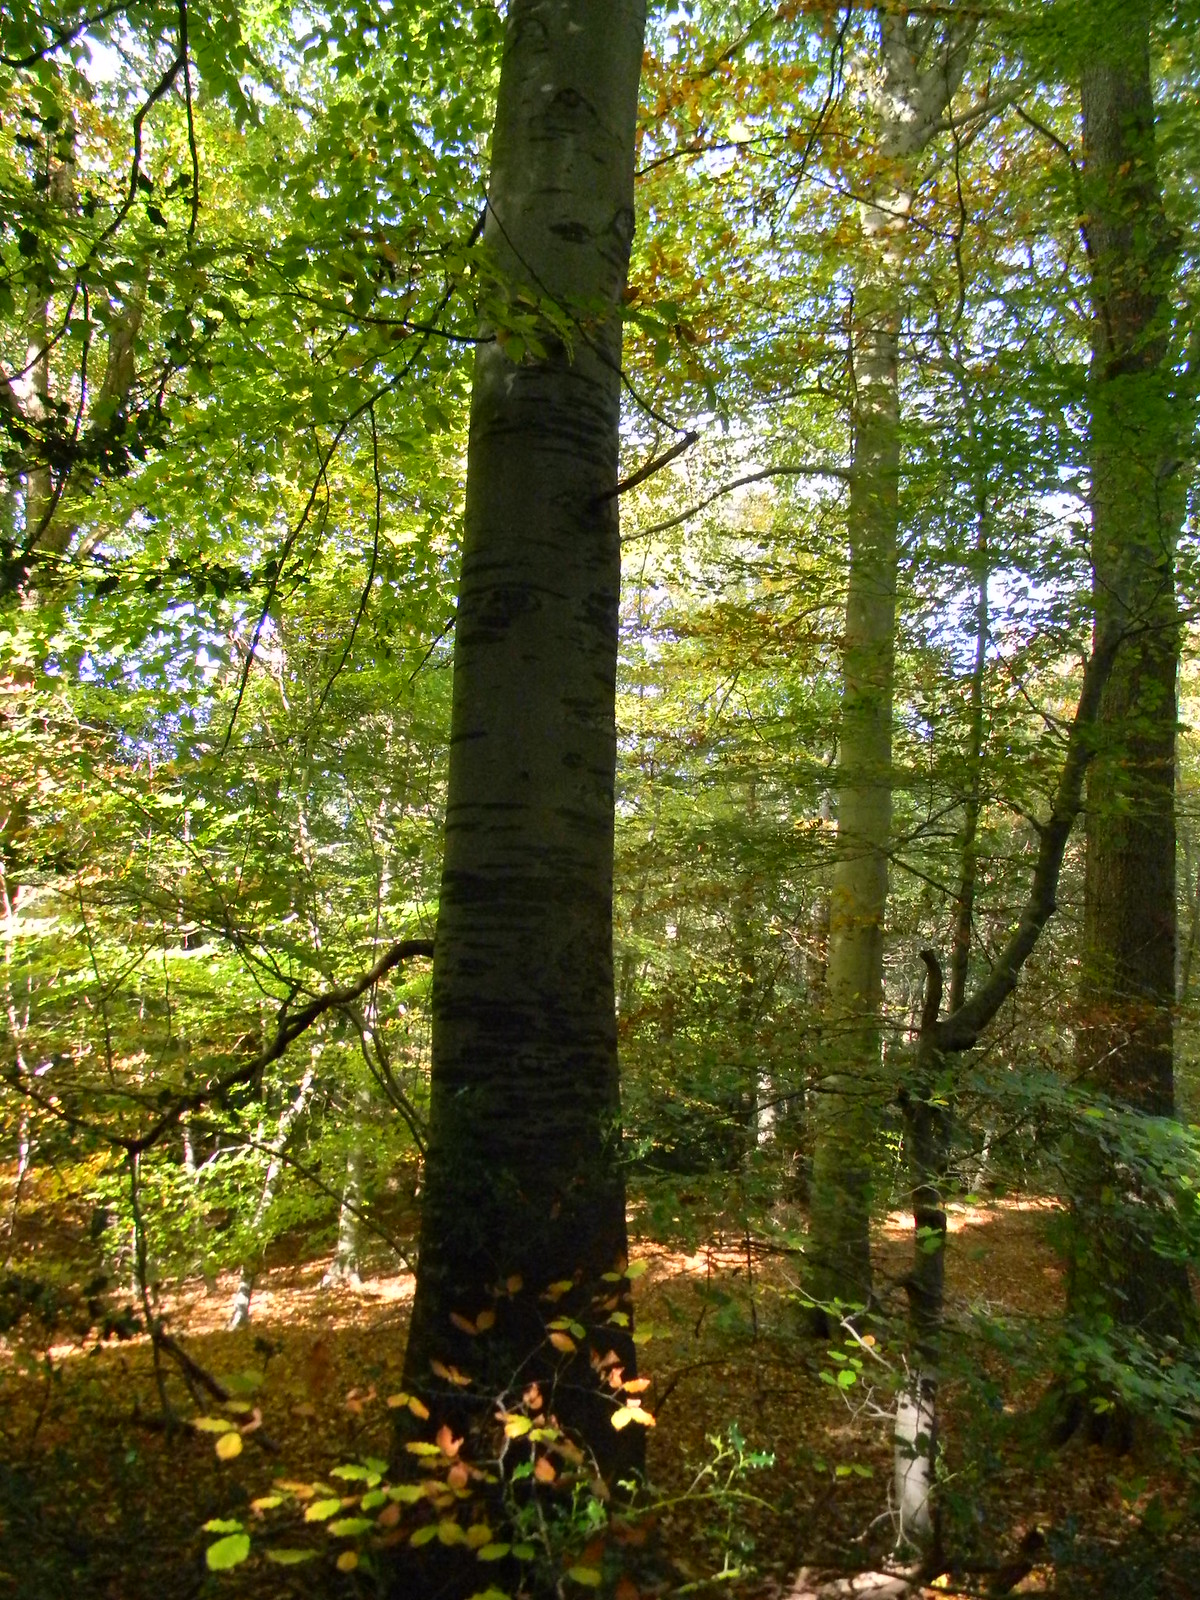 Tall tree, Burnham Beeches Gerrards Cross to Cookham Some of us took a detour into Burnham Beeches